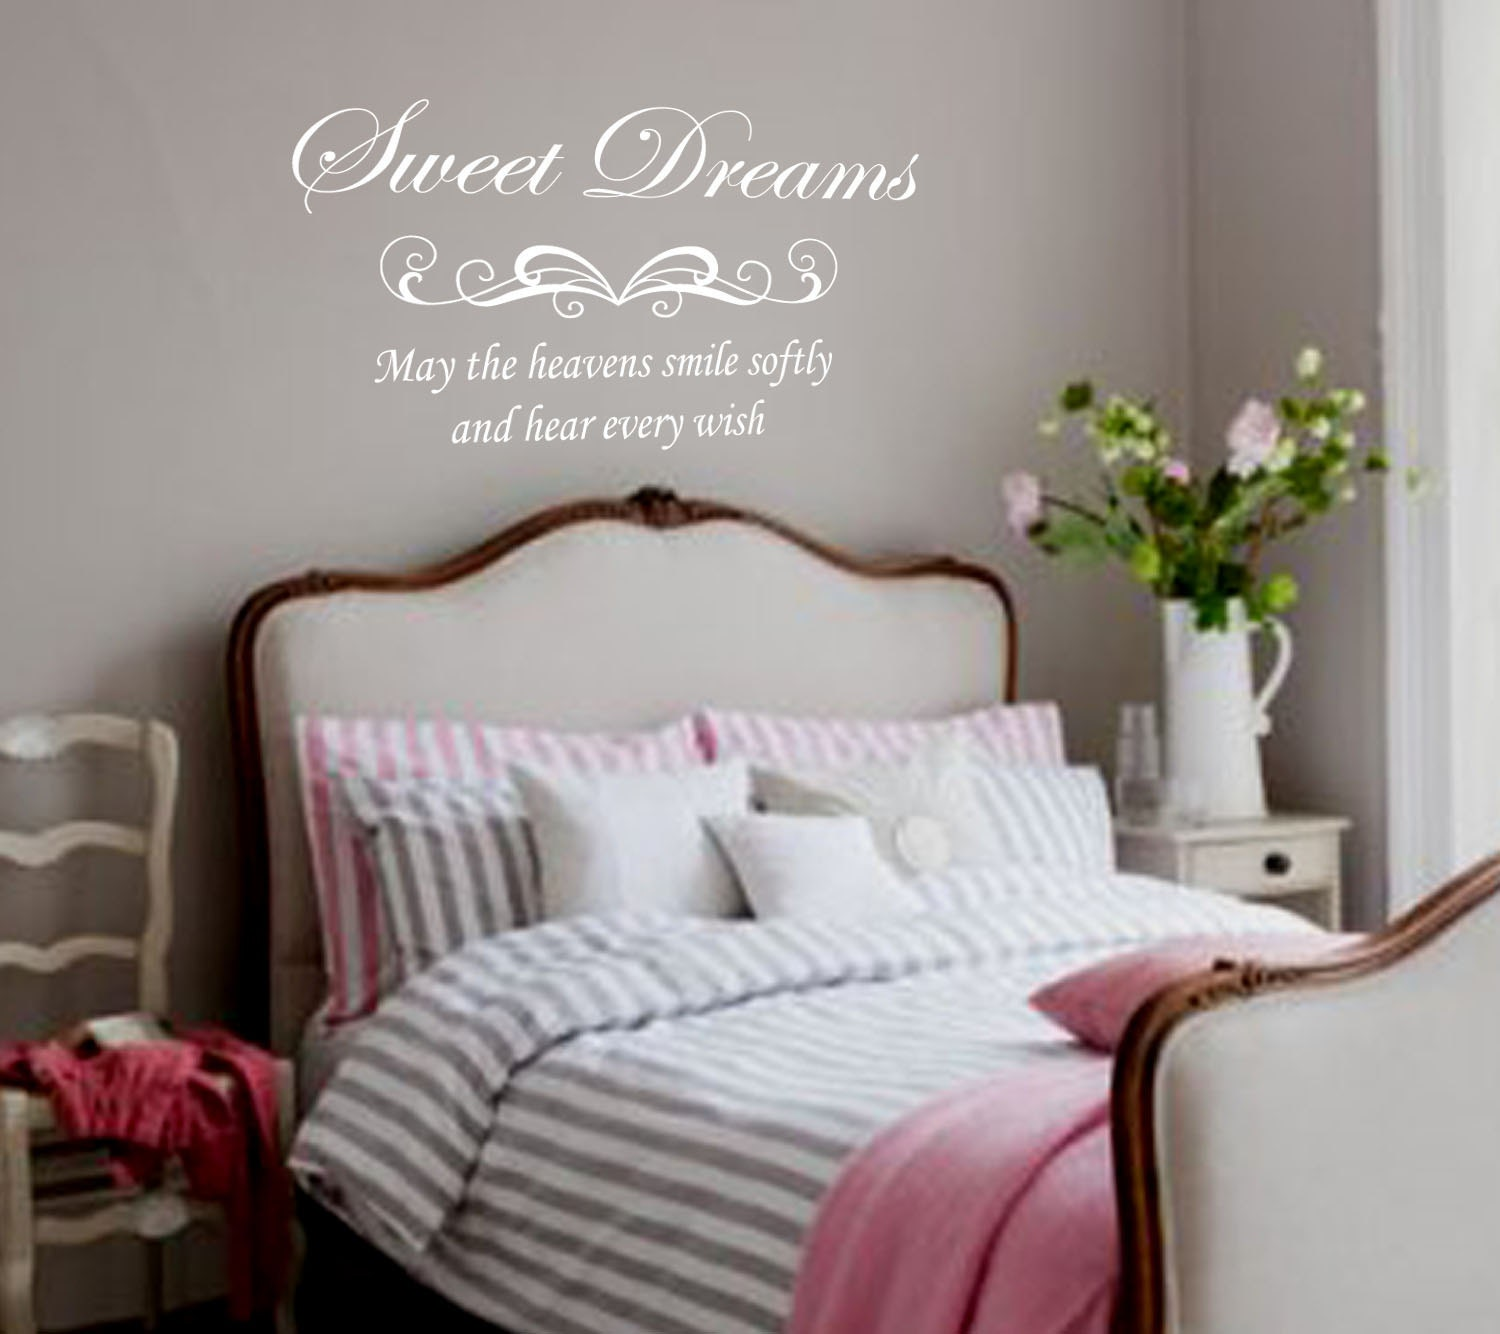 Bedroom wall decal sweet dreams removable vinyl by stixdesign Wall stickers for bedrooms